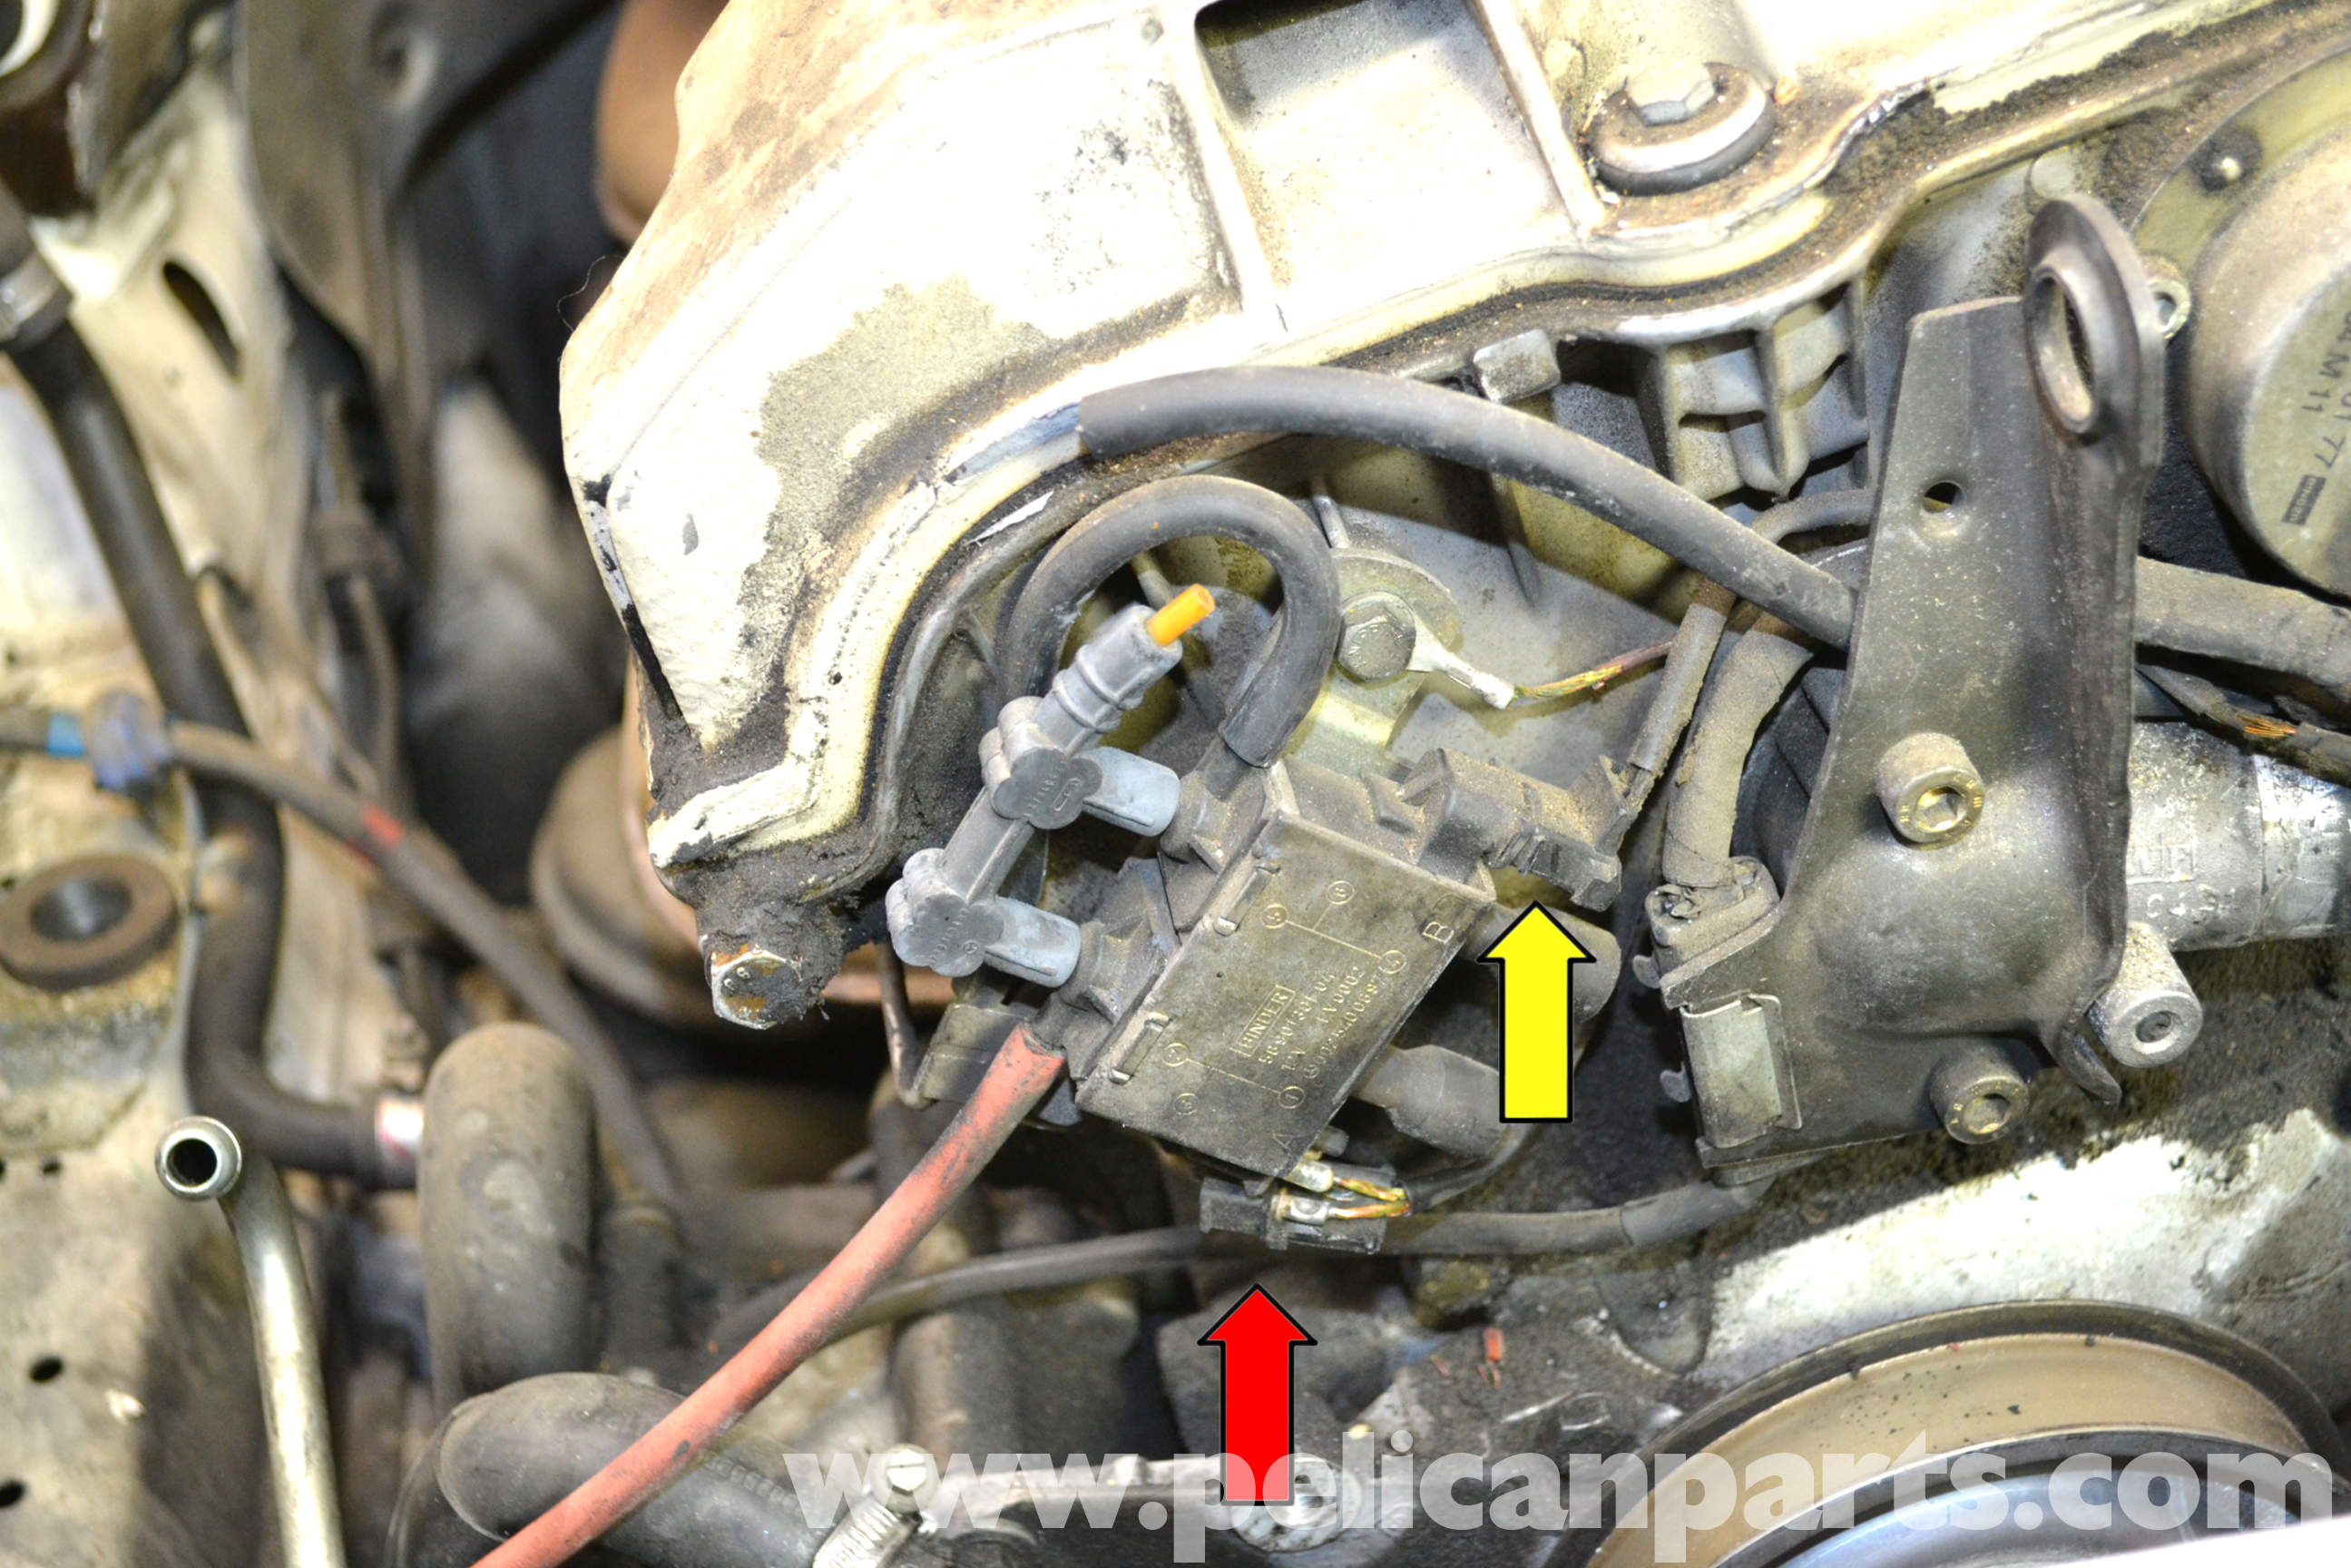 Fix Valve Cover Gasket Mercedes Benz Leak E C Clk Sl Slk Cl Ml Class also 501in Chrysler 300 C Chrysler 300 C 2005 Occasions likewise 3oigw 2005 Chrysler Pacifica 3 5 L Gas Guage furthermore Audioupgrade together with Chrysler 1 8  2 0  26 2. on chrysler crossfire wiring diagram